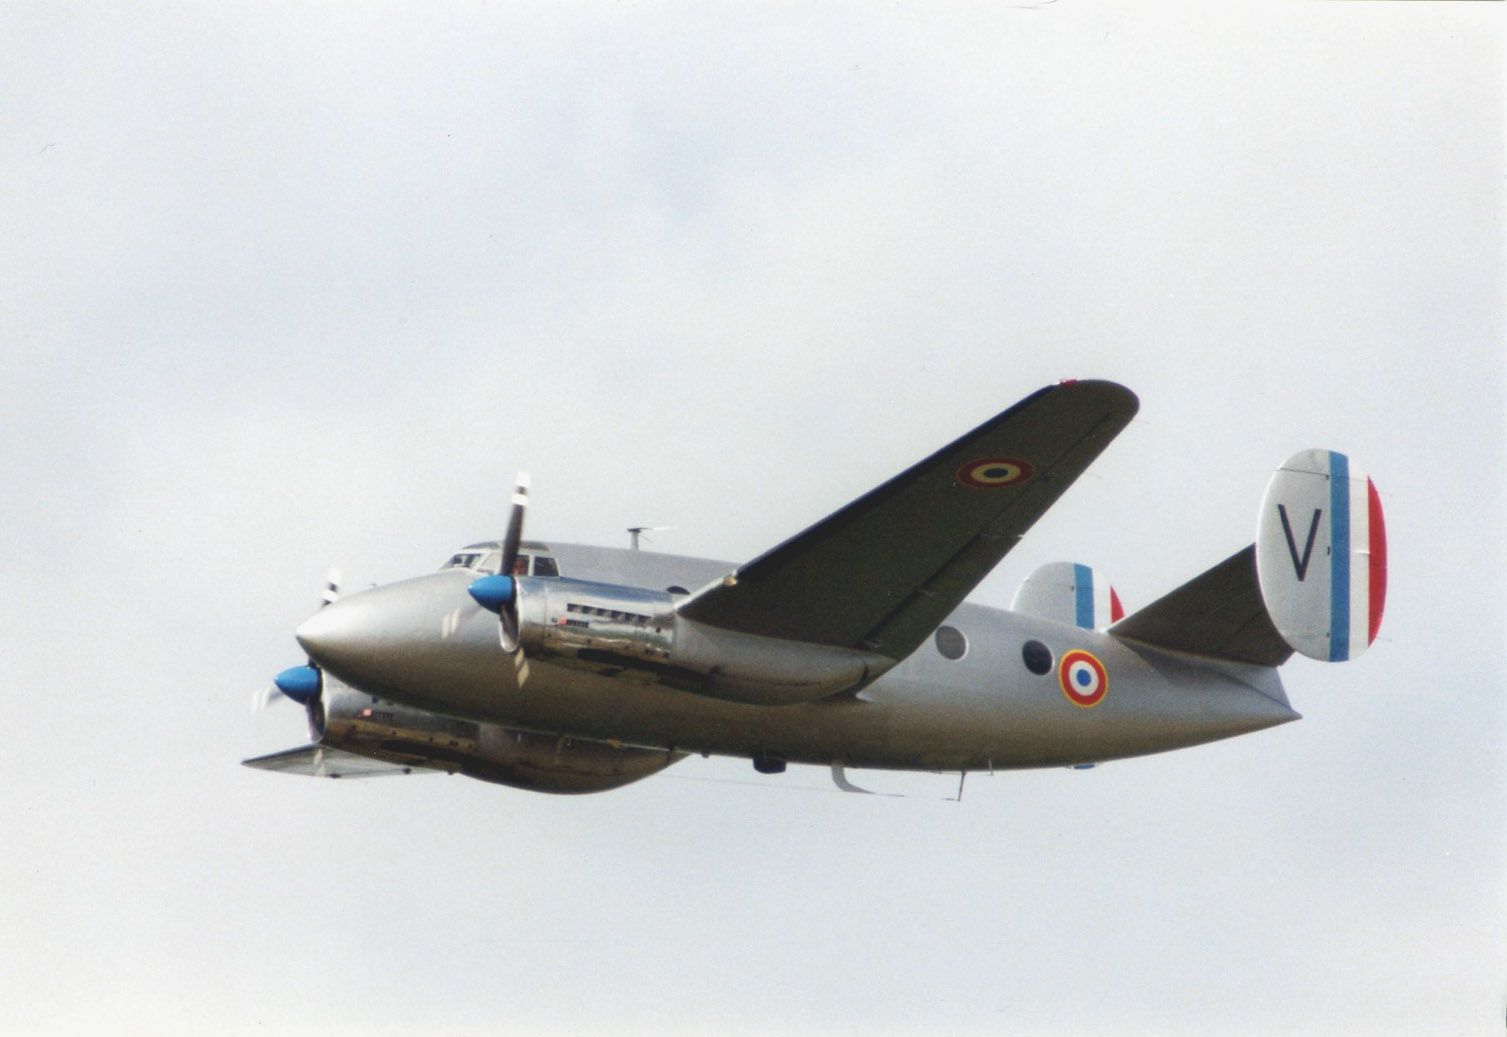 Le Dassault MD-312 Flamant F-AZDR